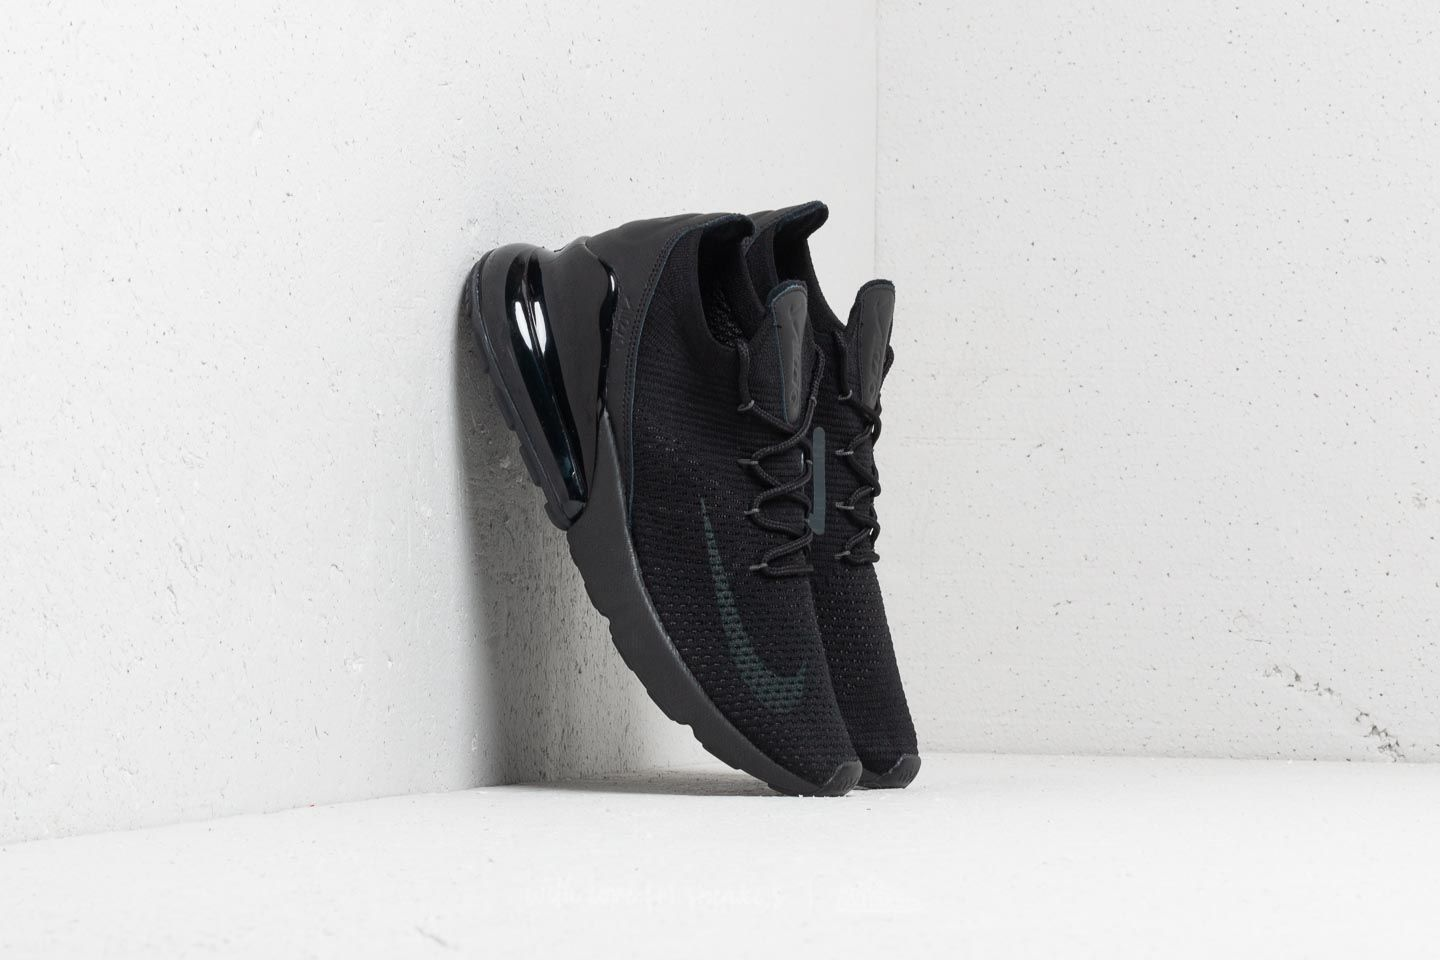 a7cac50407a8 Nike Air Max 270 Flyknit Black  Anthracite-Black